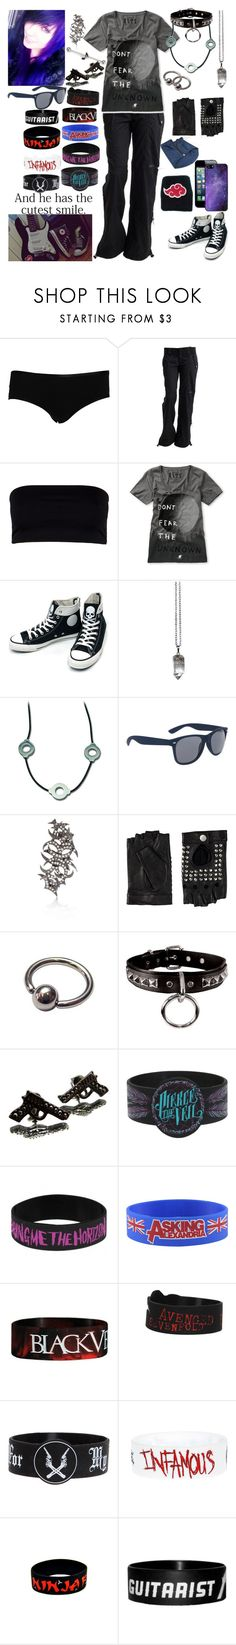 """""""Truth and dare with the guys. Should I be regretting this?"""" by rukiakuchiki12341 ❤ liked on Polyvore featuring STELLA McCARTNEY, Bench, AllSaints, Glamour Kills, Converse, Retrò, INC International Concepts, River Island, Friis & Company and Hot Topic"""